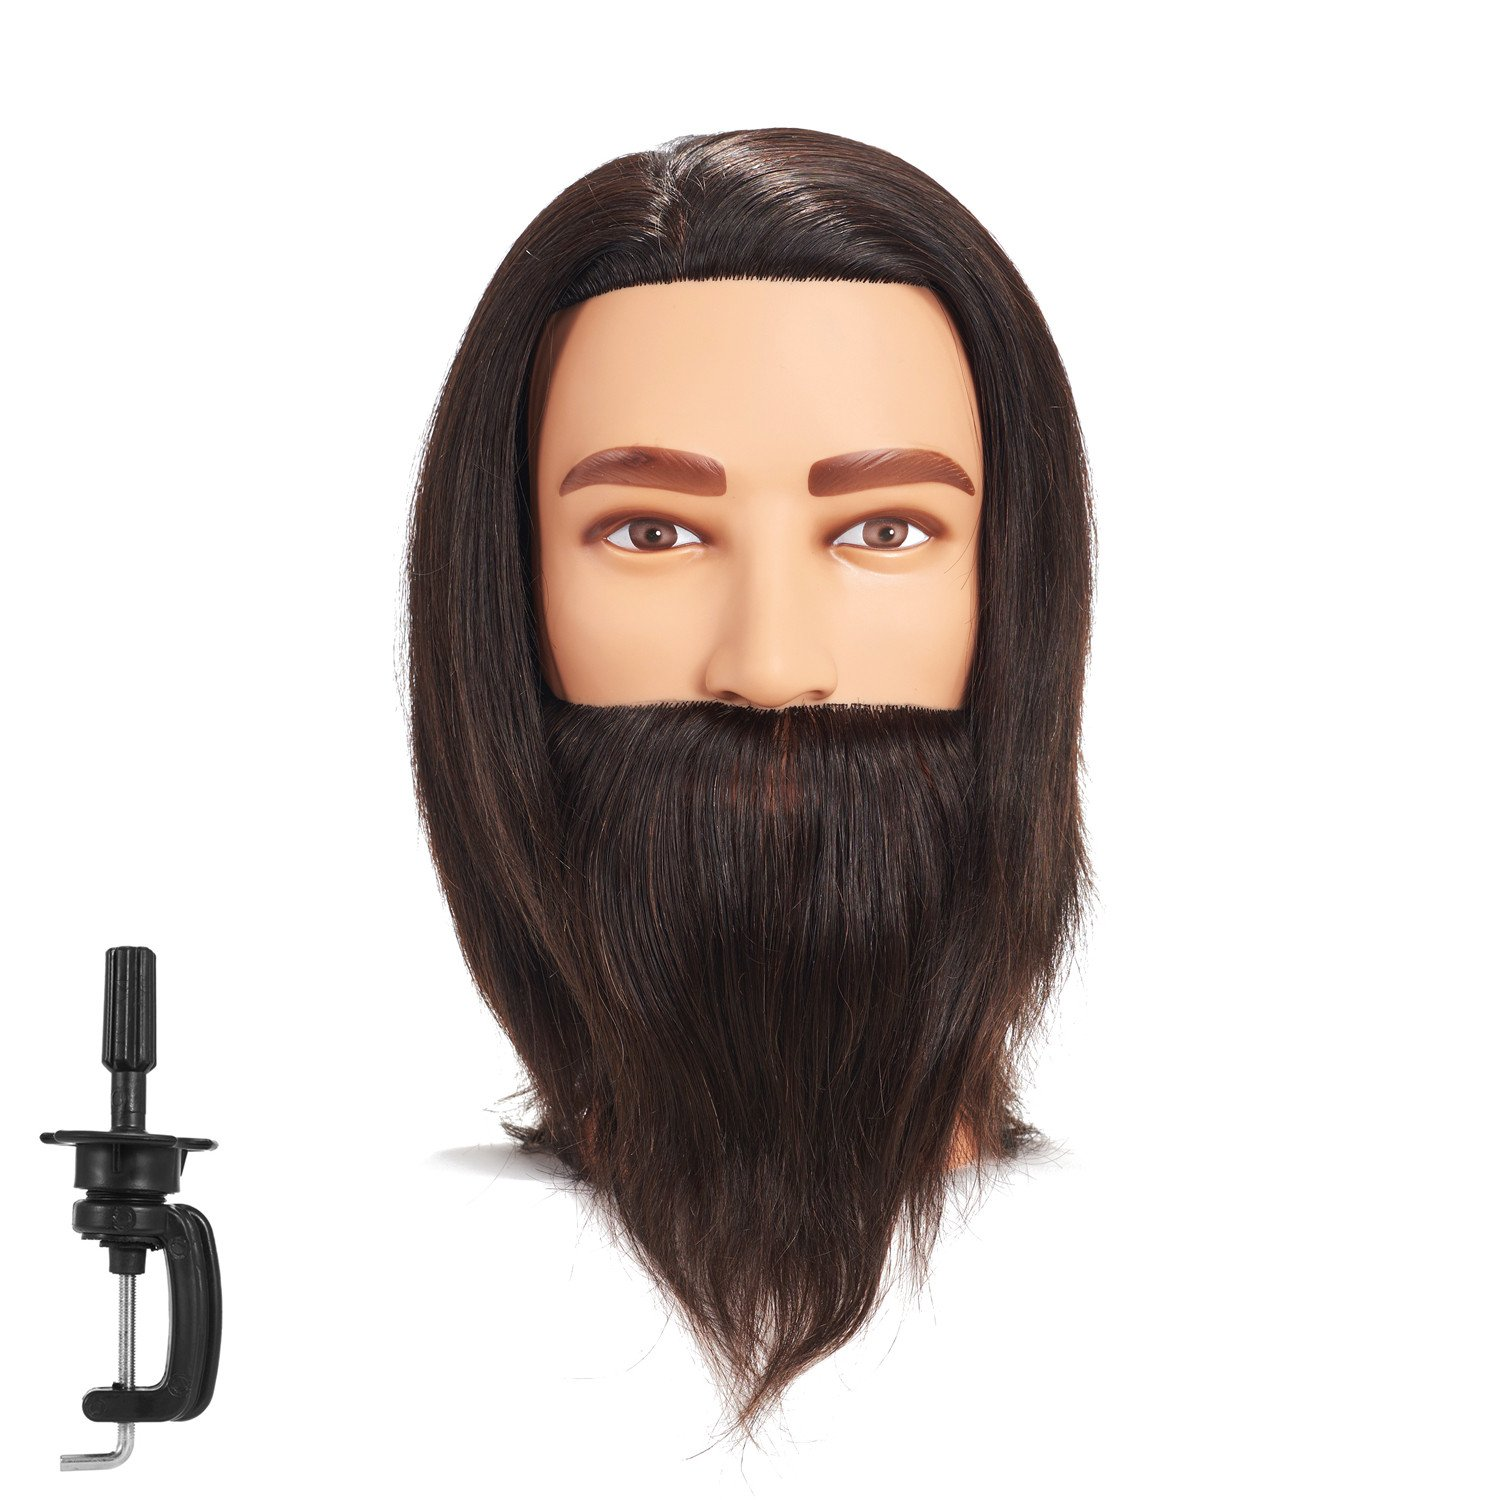 100% Human Hair Male Mannequin Head Hairdresser Training Head Manikin Cosmetology Doll Head for Hair Styling & Practice with free clamp (6RA2002LB0208AH)